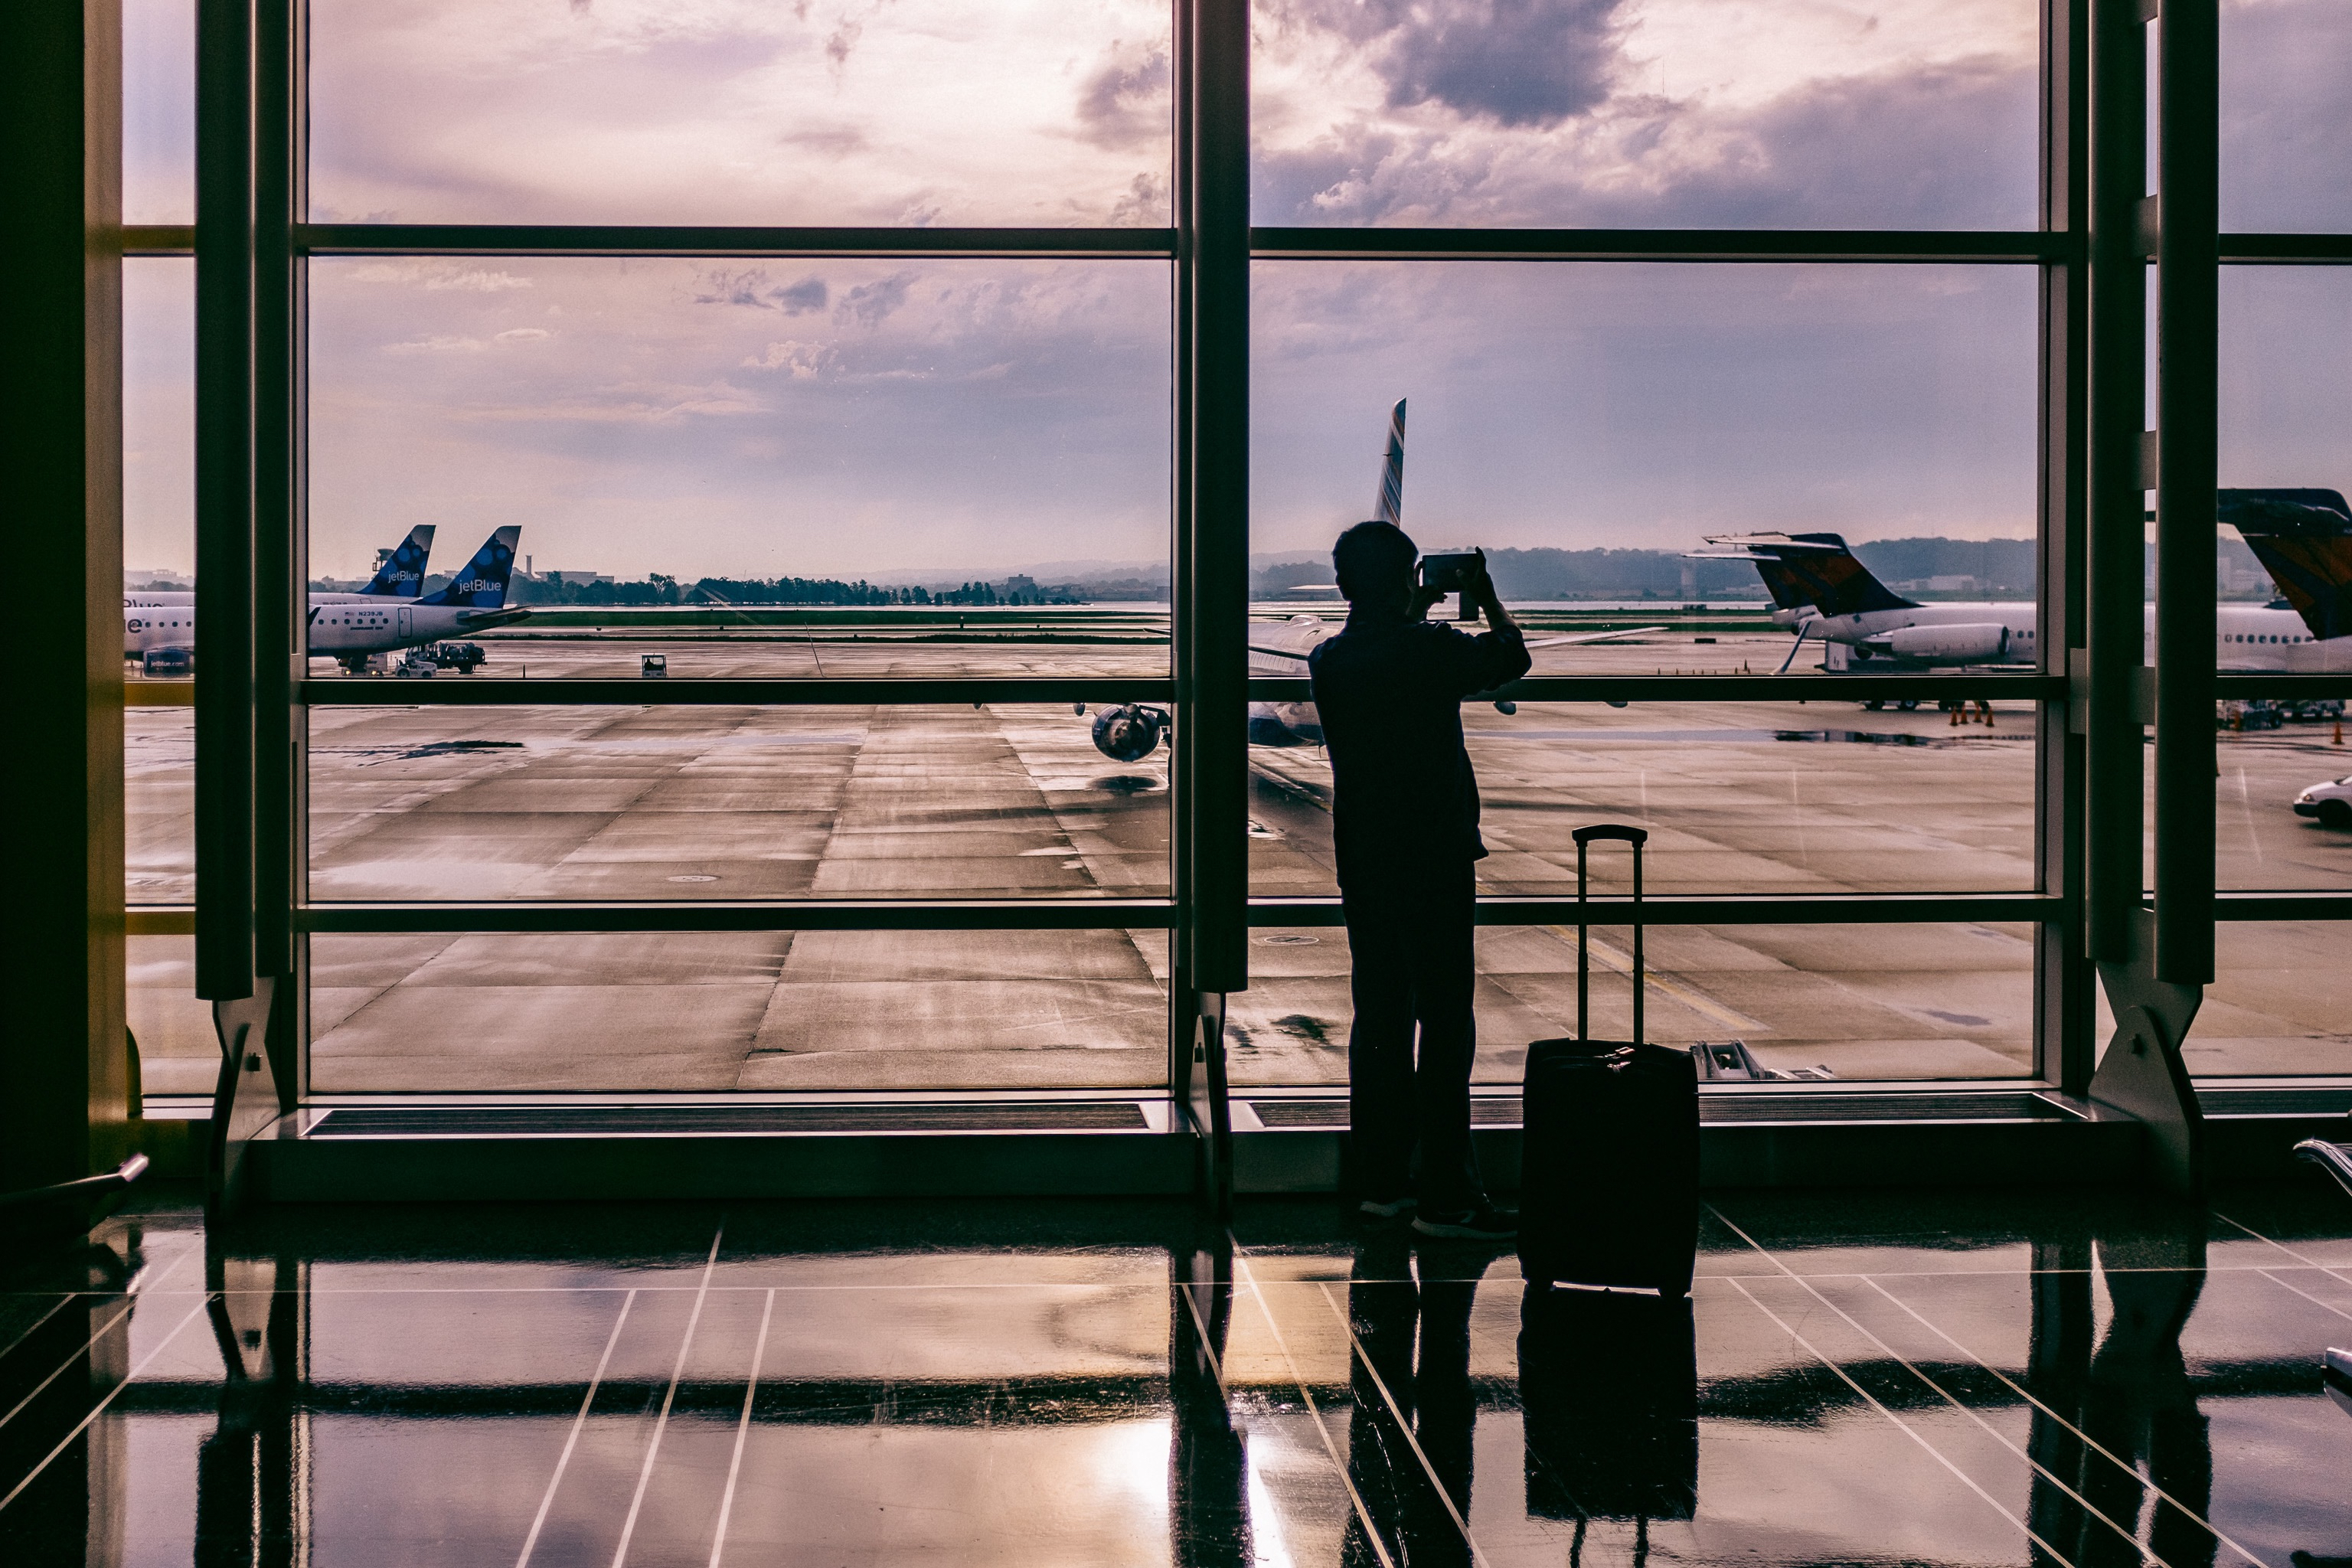 The ultimate guide to choosing the right frequent flyer program